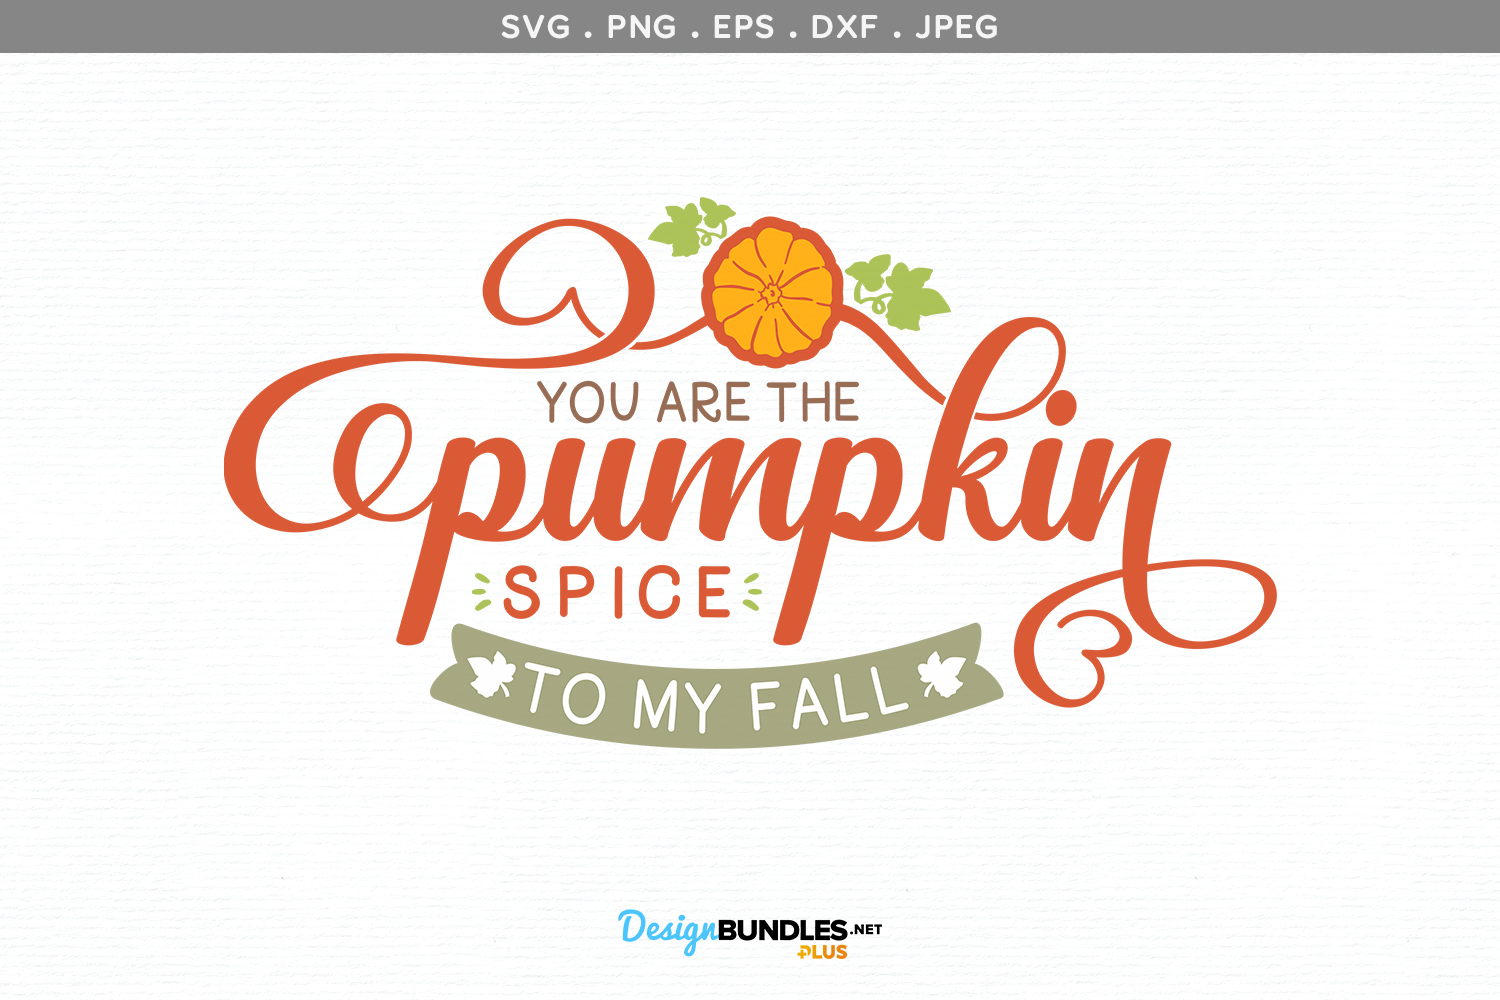 You are the Pumpkin Spice to my Fall - svg, printable example image 2